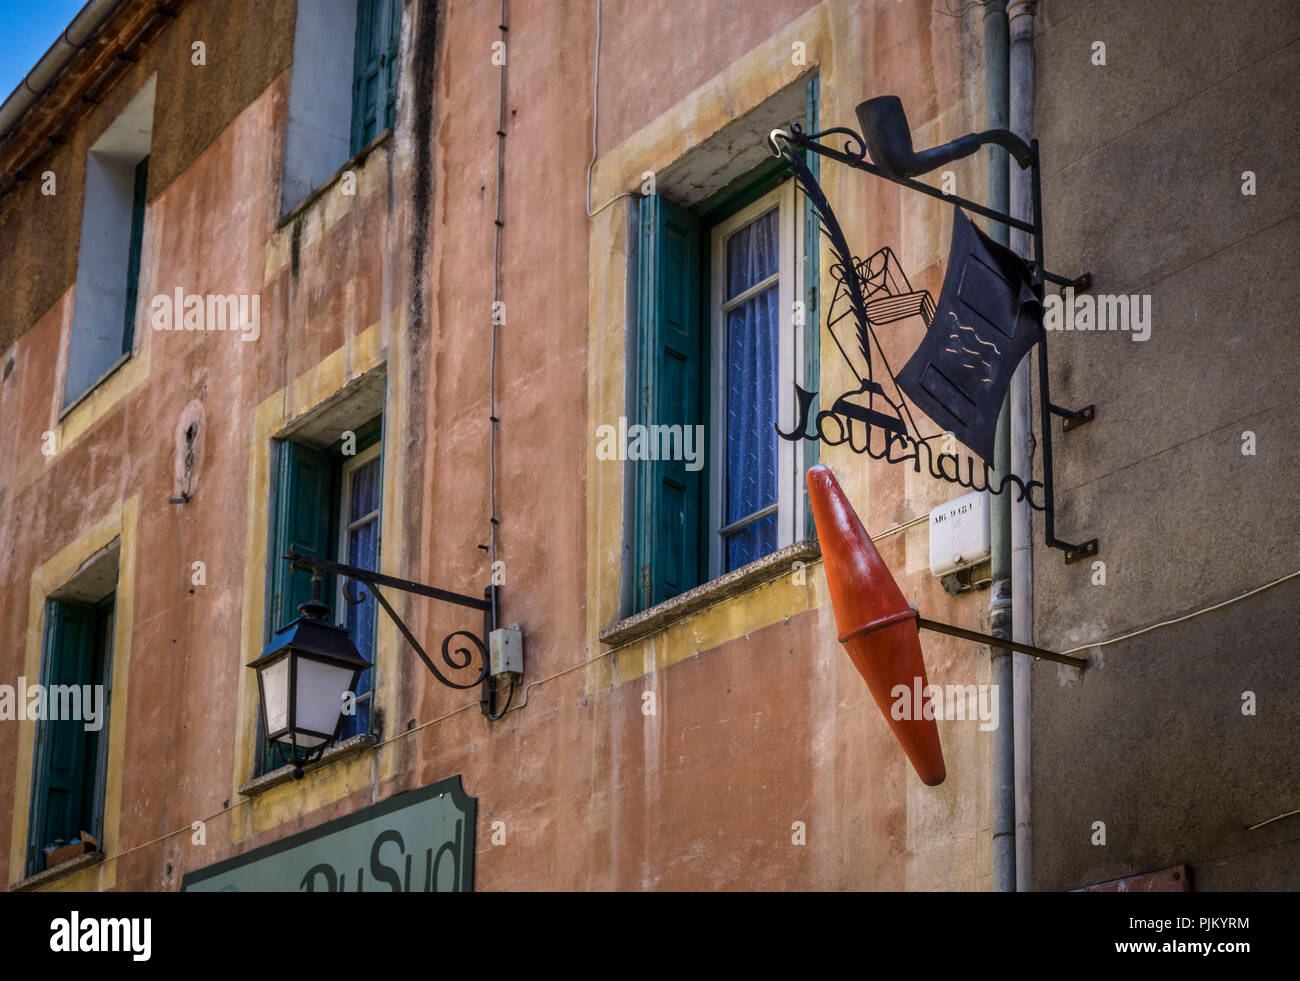 Advertising sign in Villefranche de Conflent, the fortified village is part of the UNESCO World Heritage, plus beaux villes de France, founded in the XI century, Stock Photo